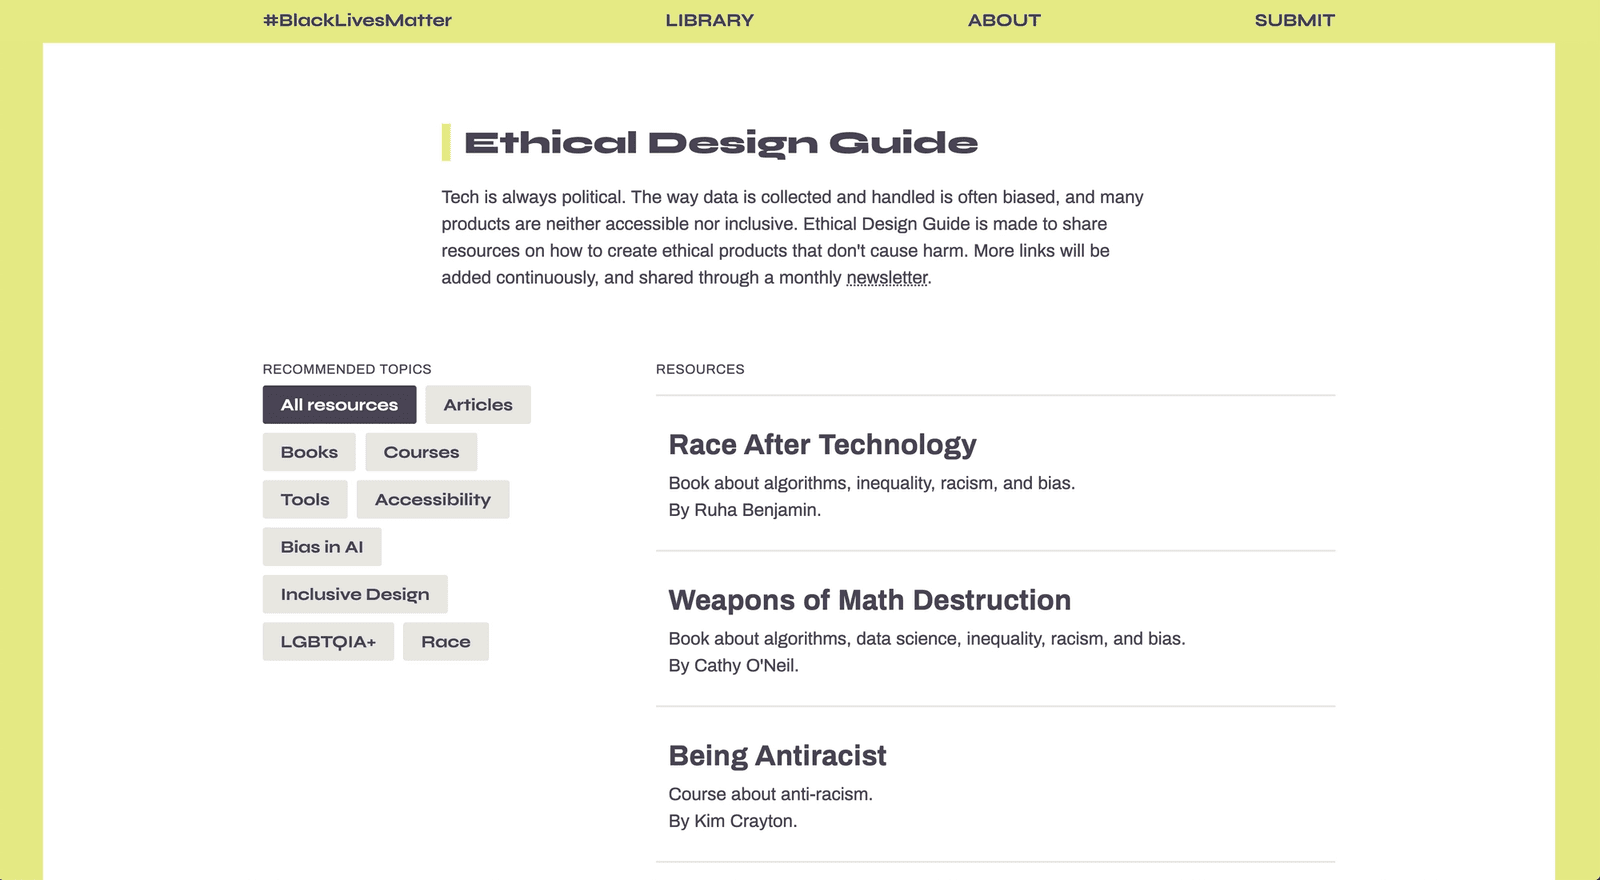 Screenshot of ethicaldesign.guide: a description on top, recommended topics on the left, and resources on the right